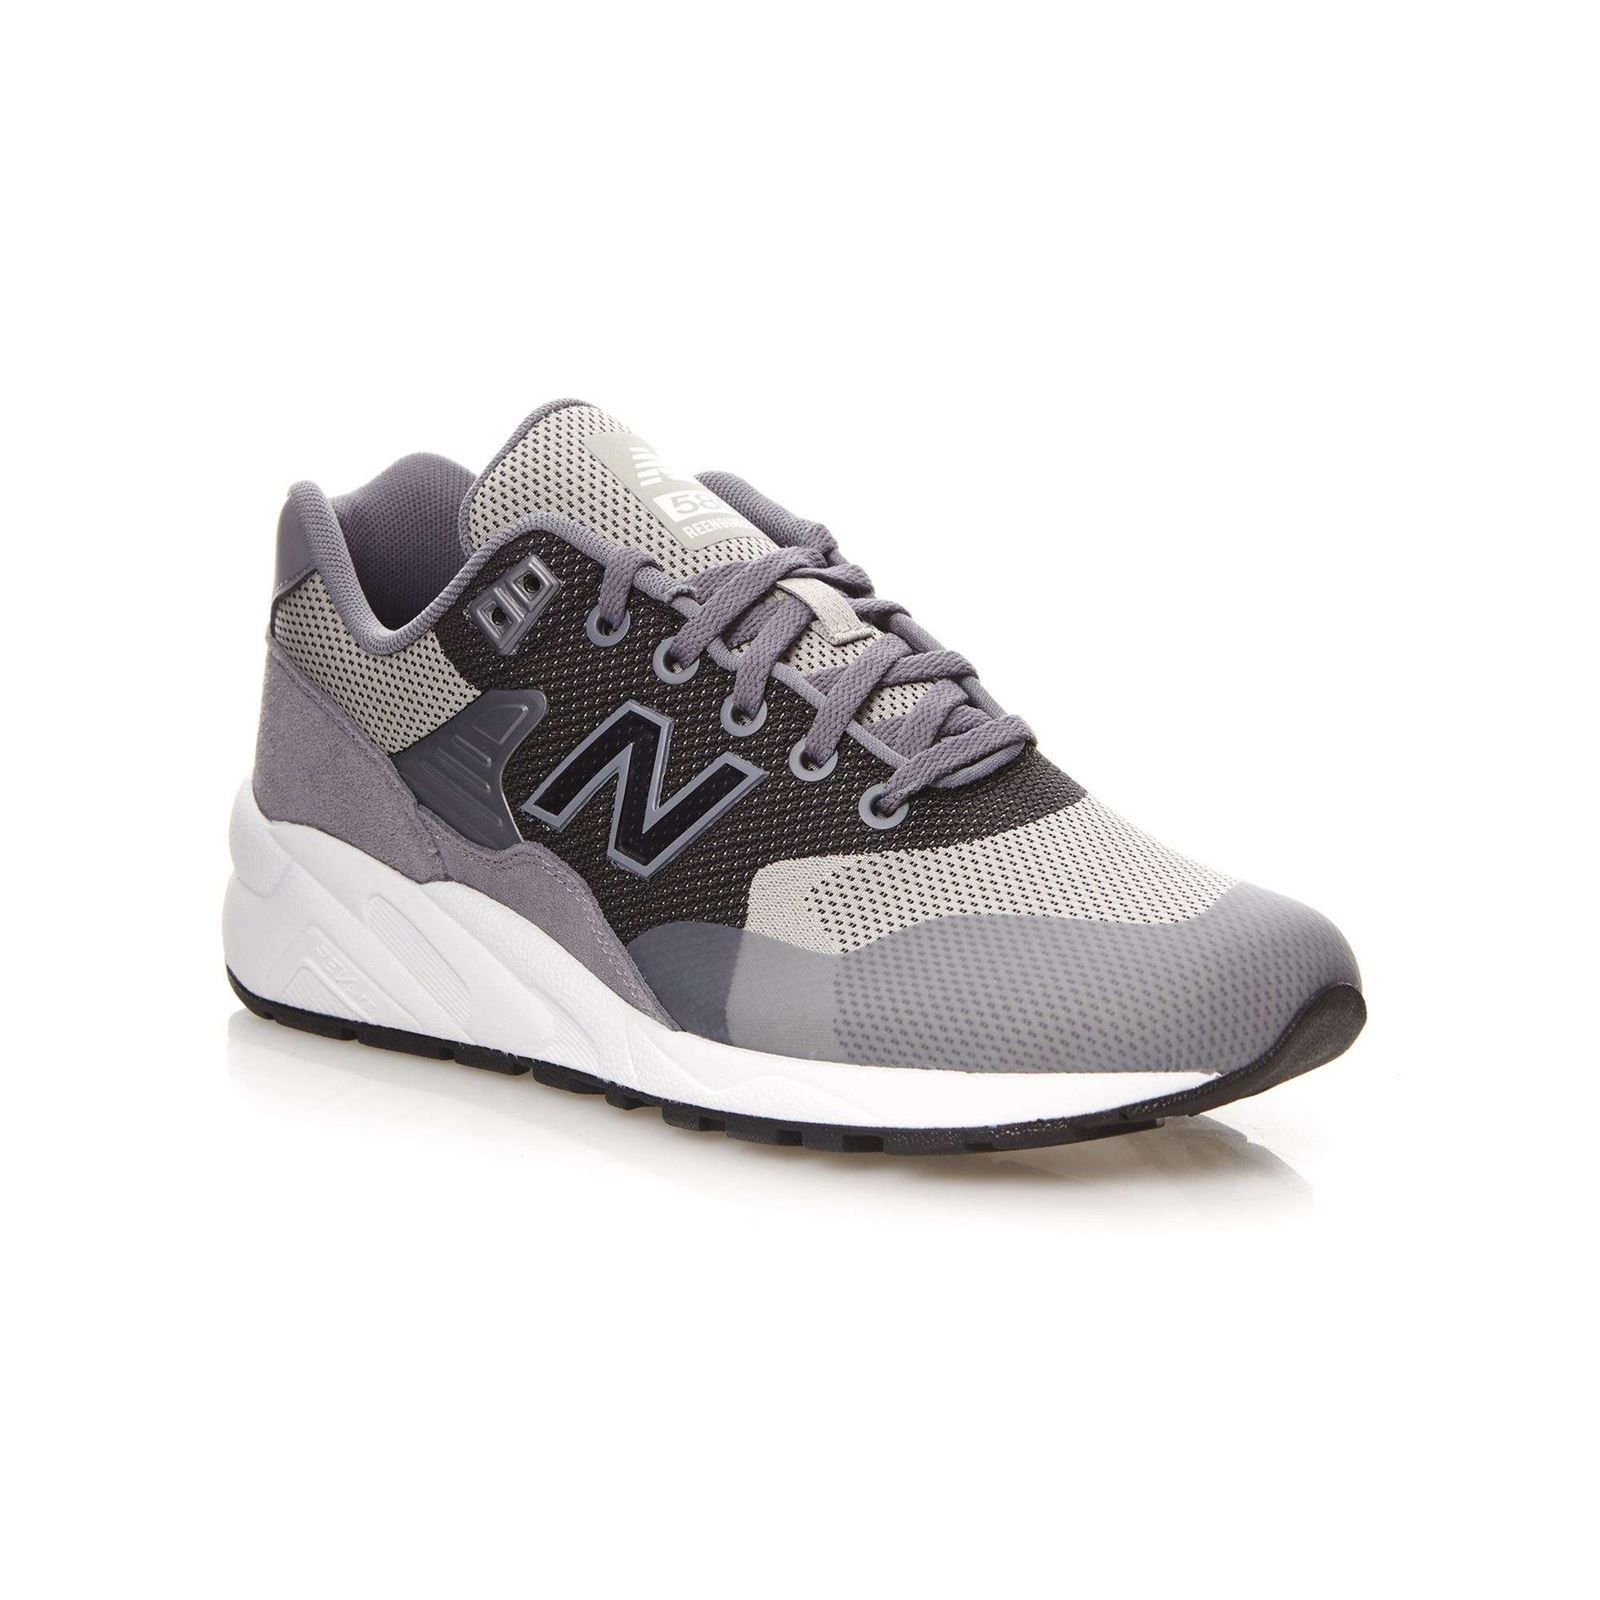 NEW BALANCE MRT580 - Baskets - gris